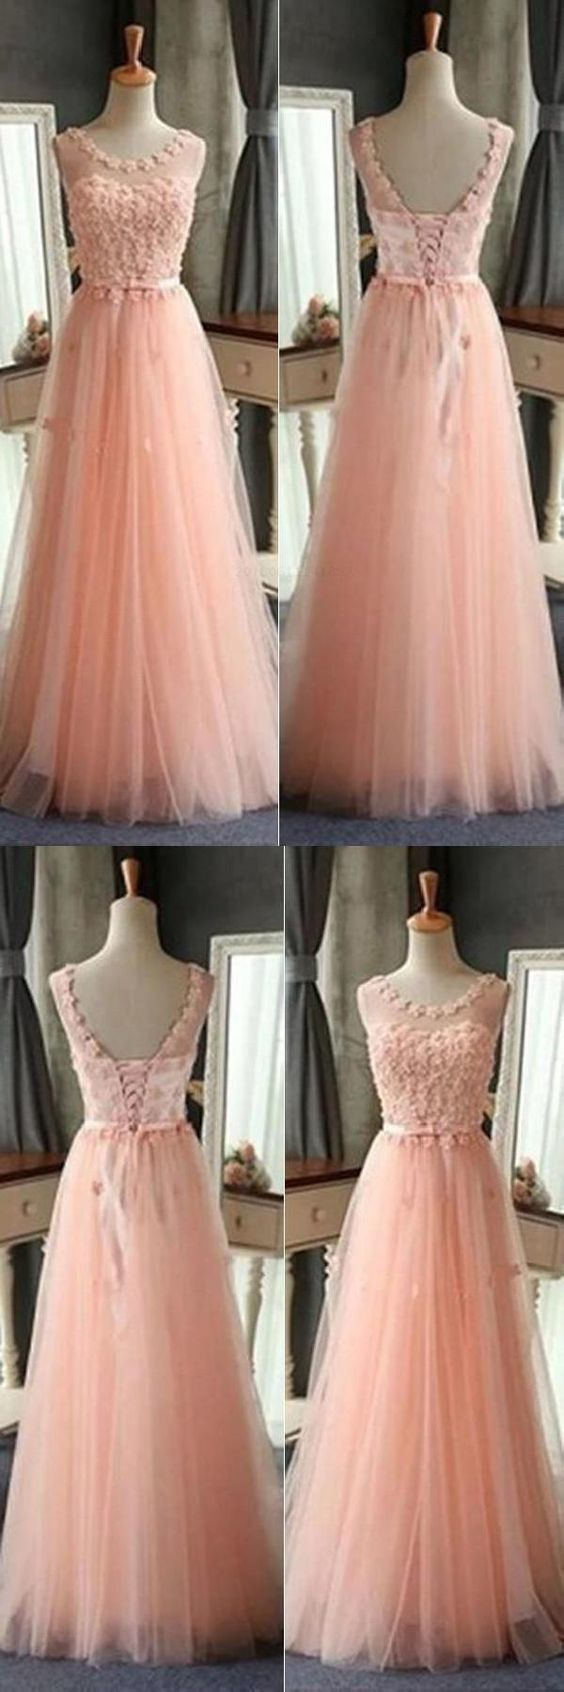 Elegant Tulle Appliques Floor Length Prom Dress, Cheap Lace up Homecoming Dress